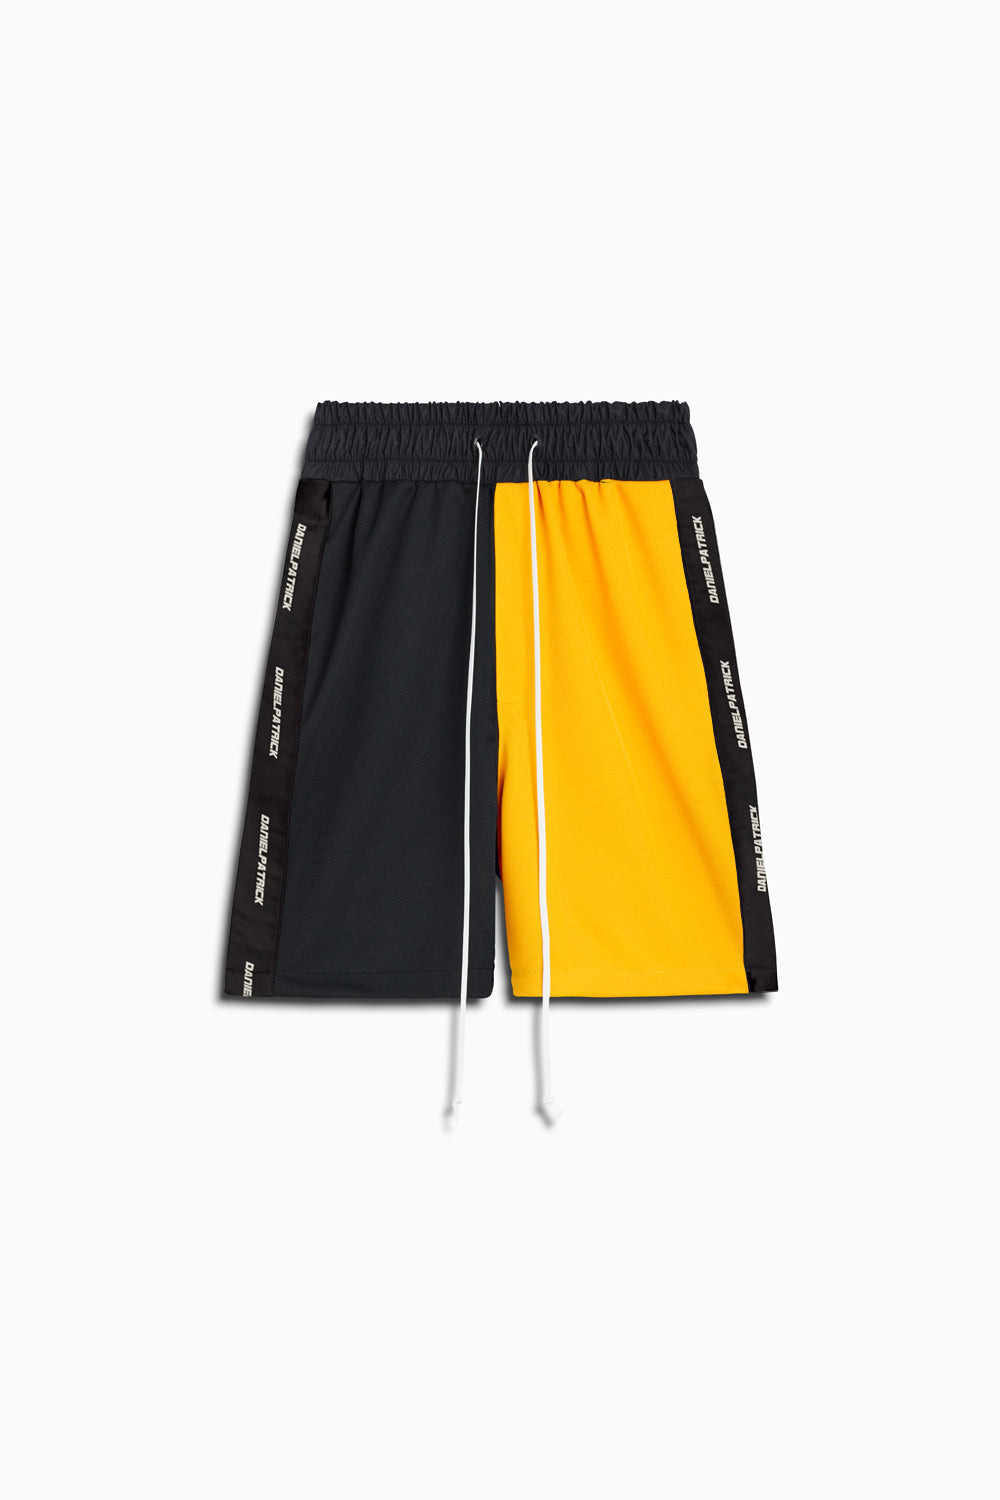 50/50 gym short in black/yellow by daniel patrick